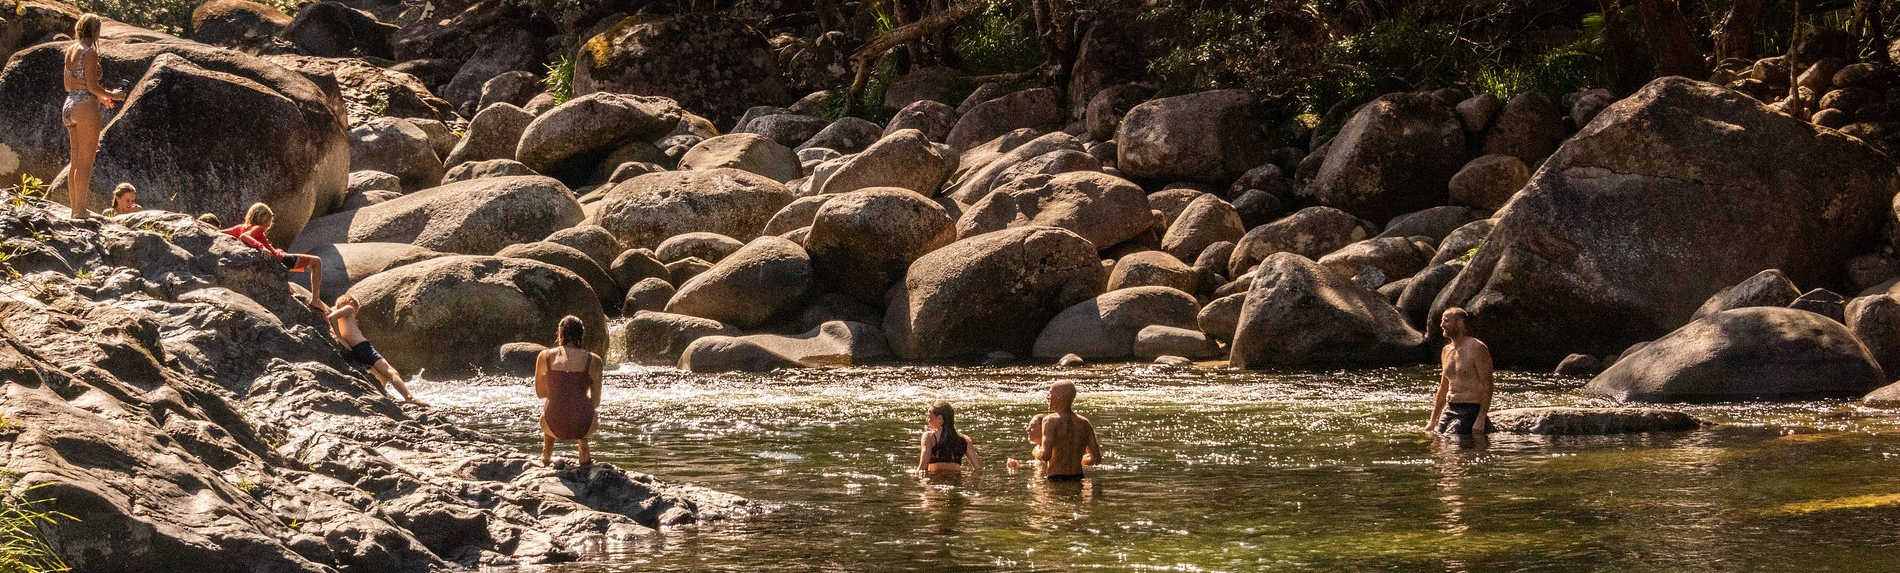 Are there crocodiles in Mossman Gorge?